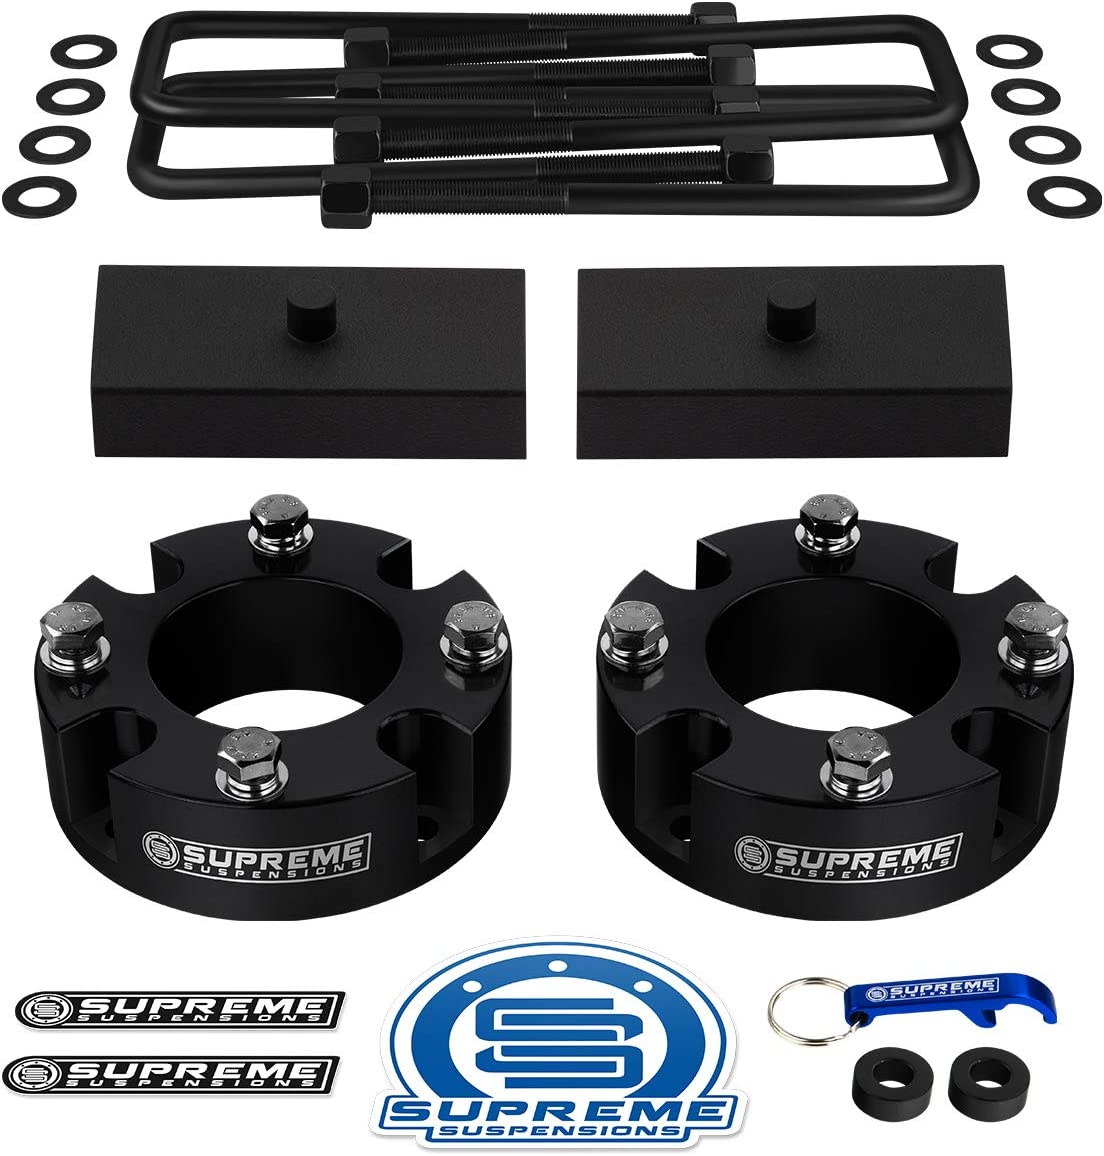 Supreme Suspensions Silver Front Leveling Kit for 2007-2021 Toyota Tundra and 2007-2021 Toyota Sequoia 3 Front Lift Strut Spacers 2WD 4WD